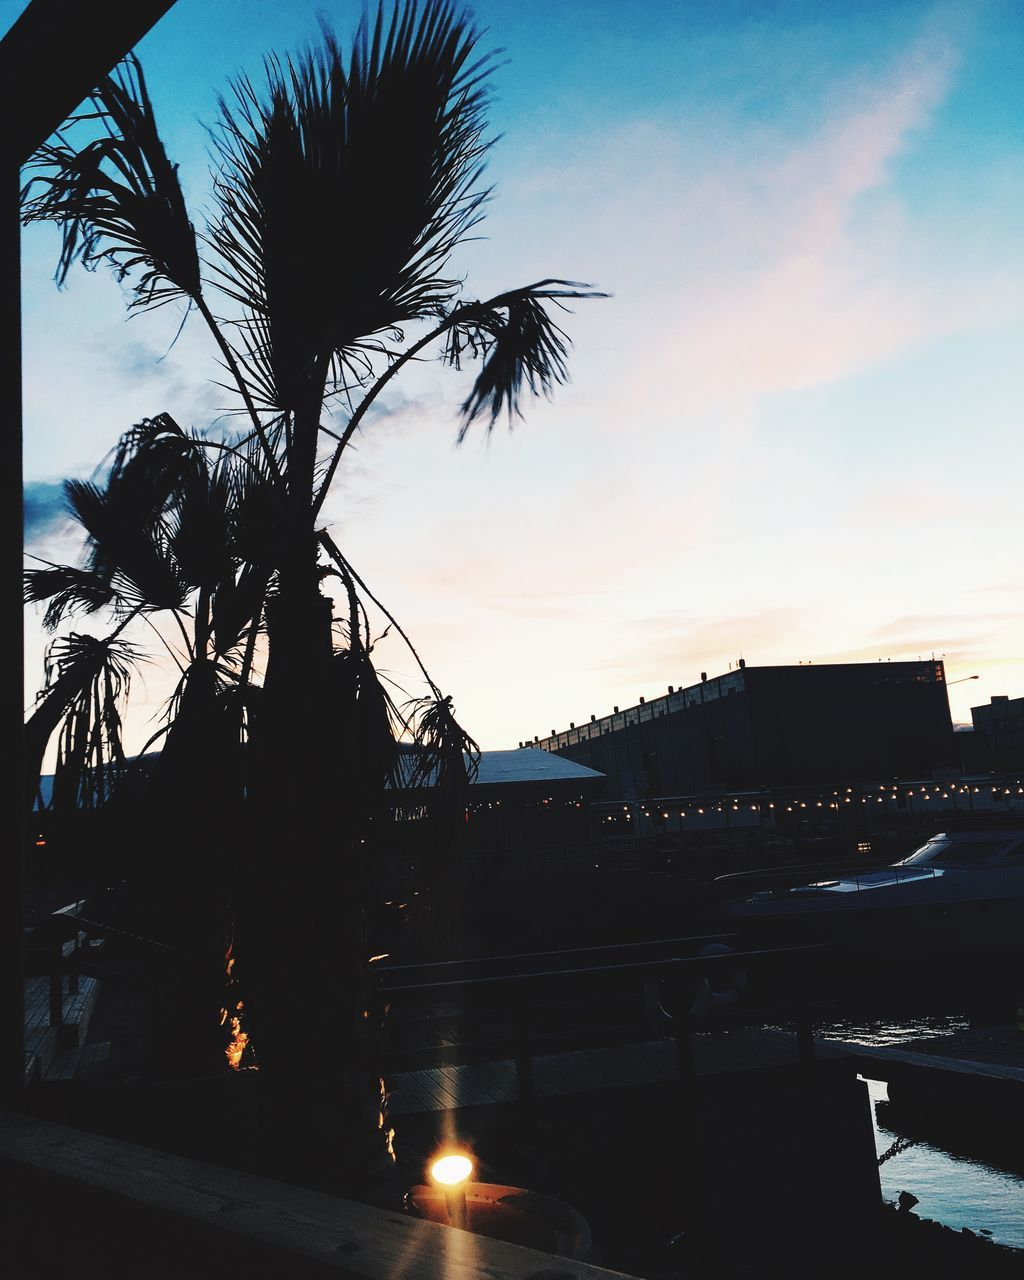 tree, sunset, sky, silhouette, built structure, palm tree, outdoors, architecture, sunlight, building exterior, no people, nature, clear sky, day, city, beauty in nature, water